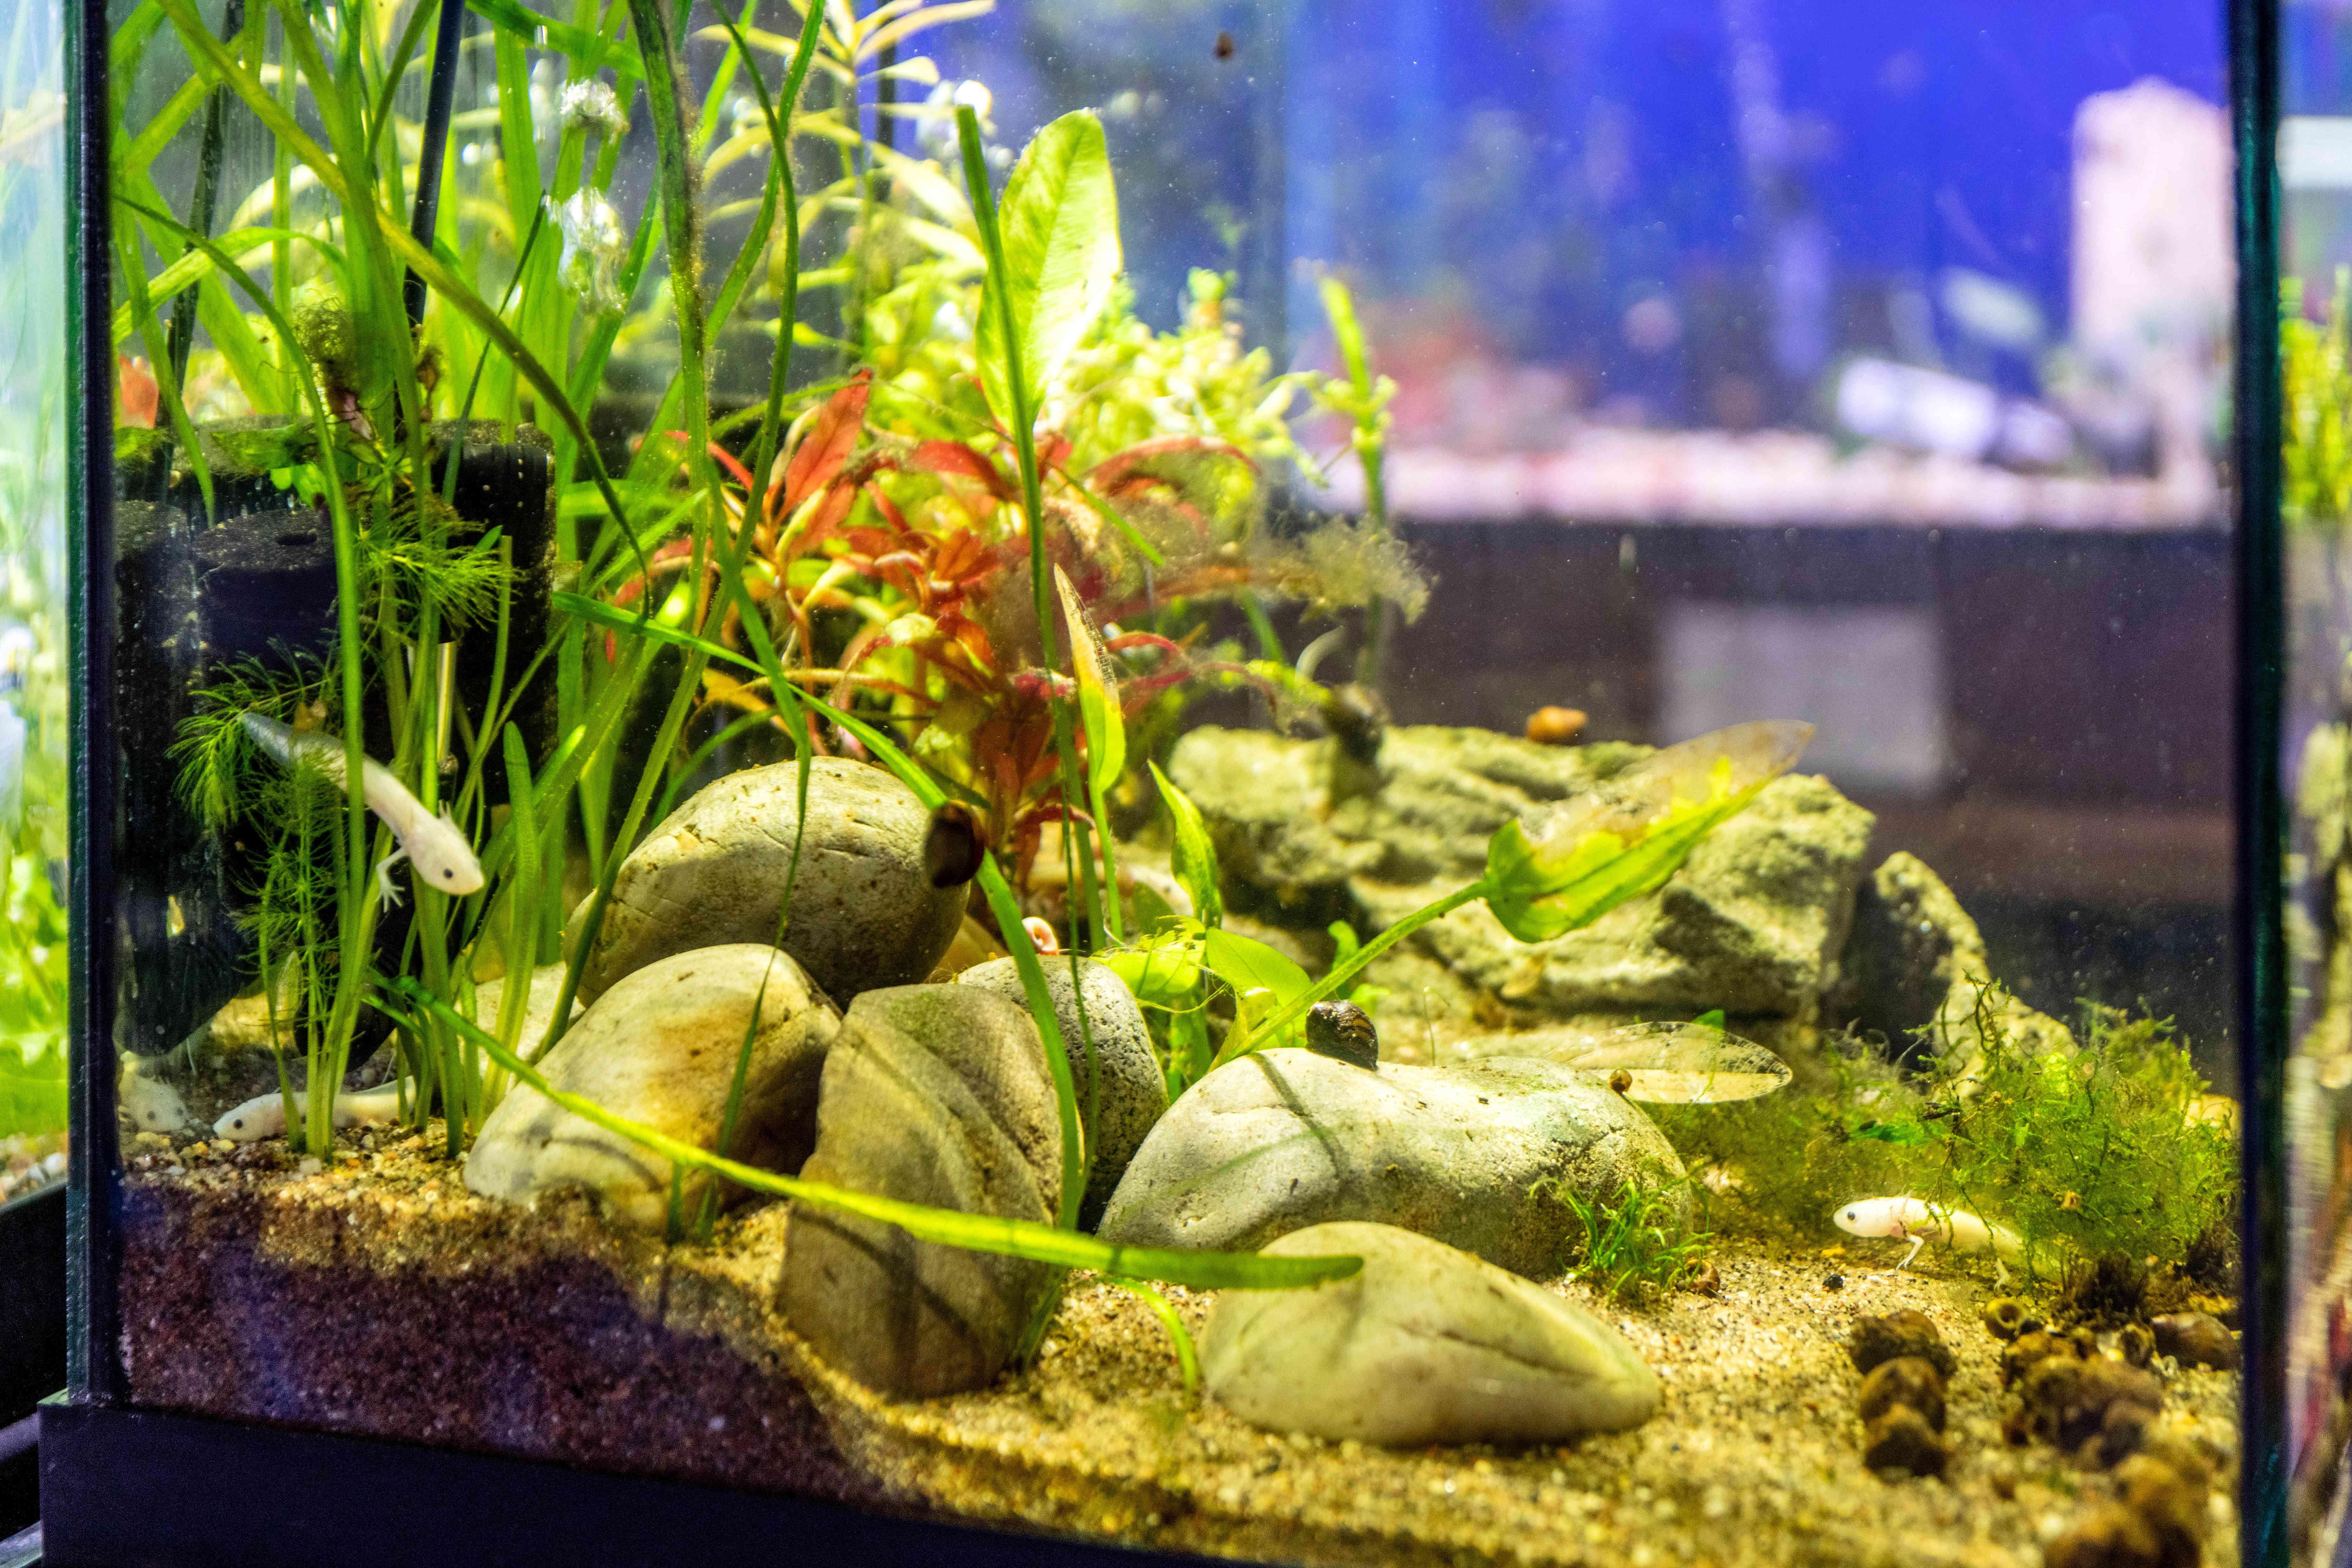 Small white axolotl pet swimming in tank with large rocks and tall vegetation